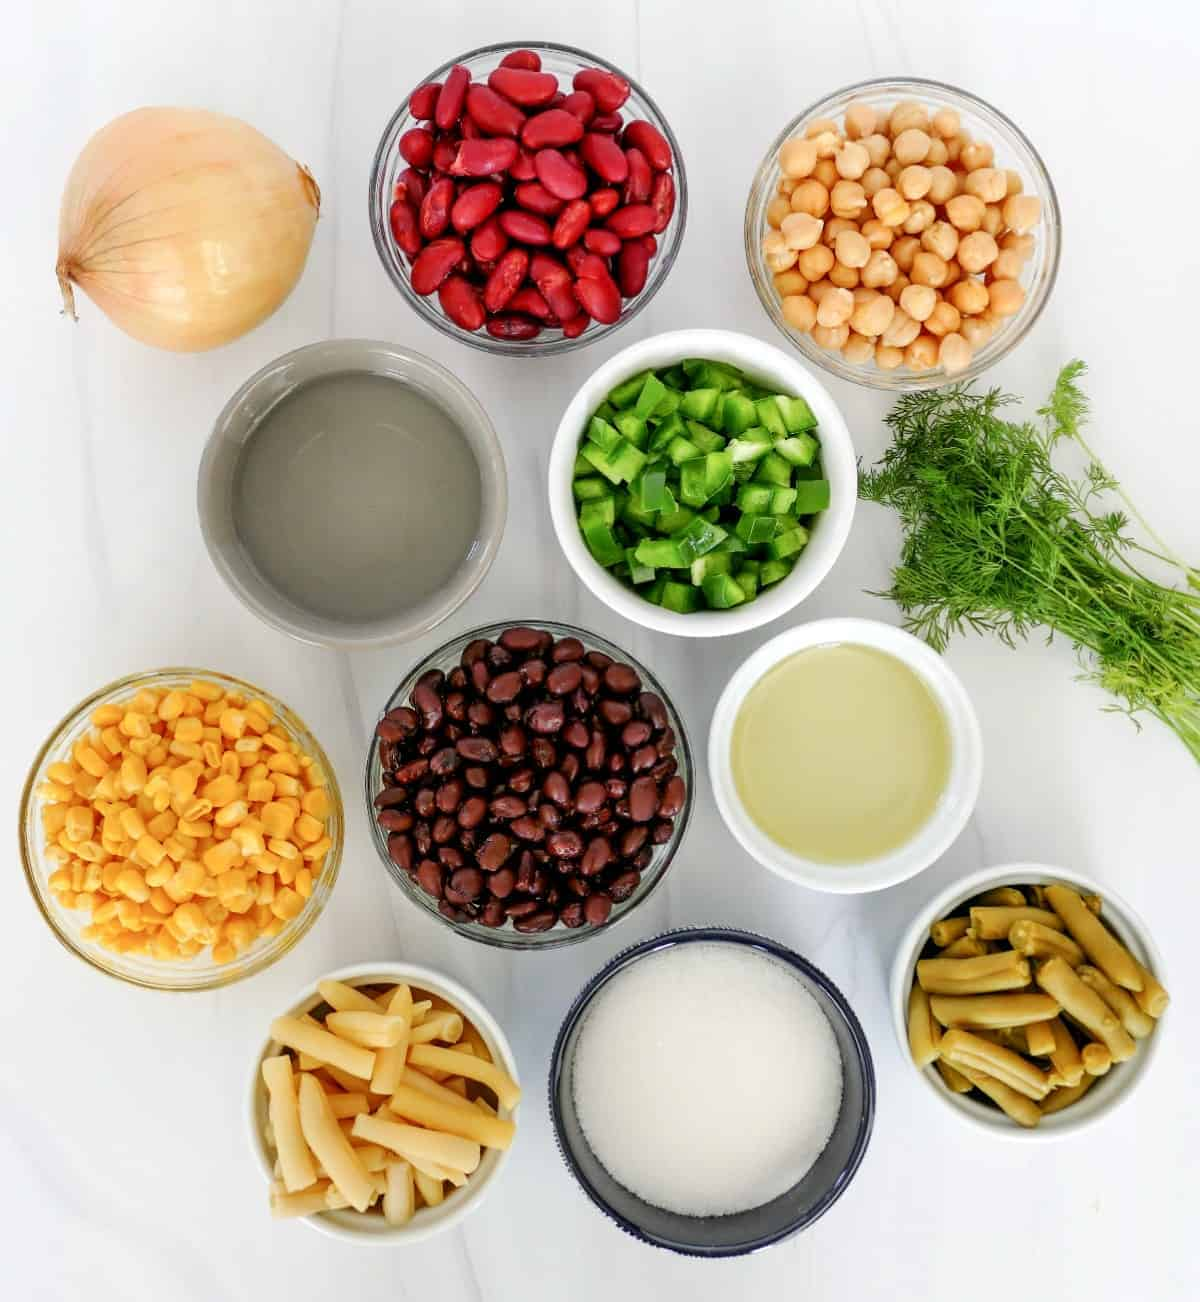 All of the ingredients for a five bean salad in individual bowls.